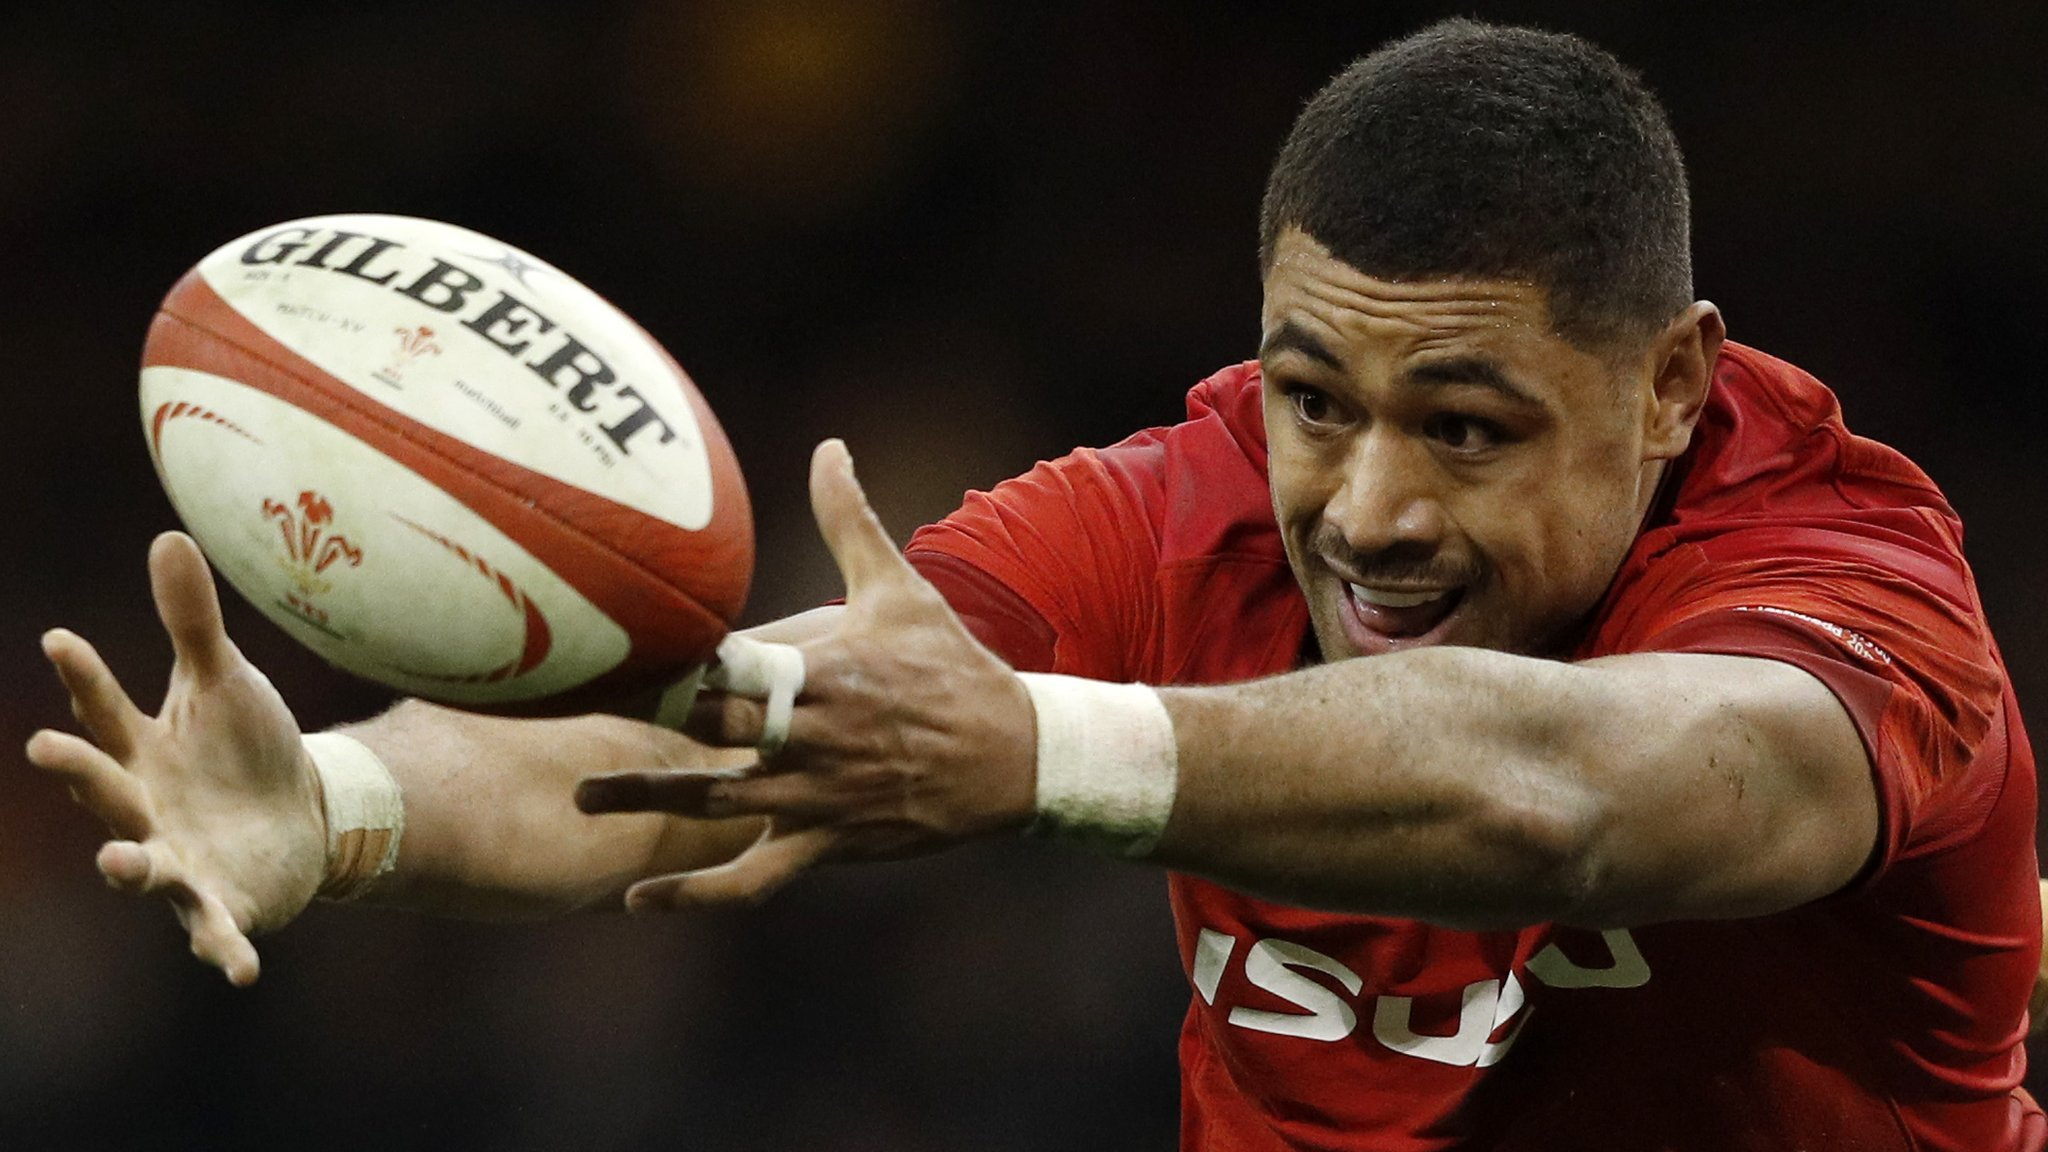 Wales' Faletau set to miss Six Nations with broken arm